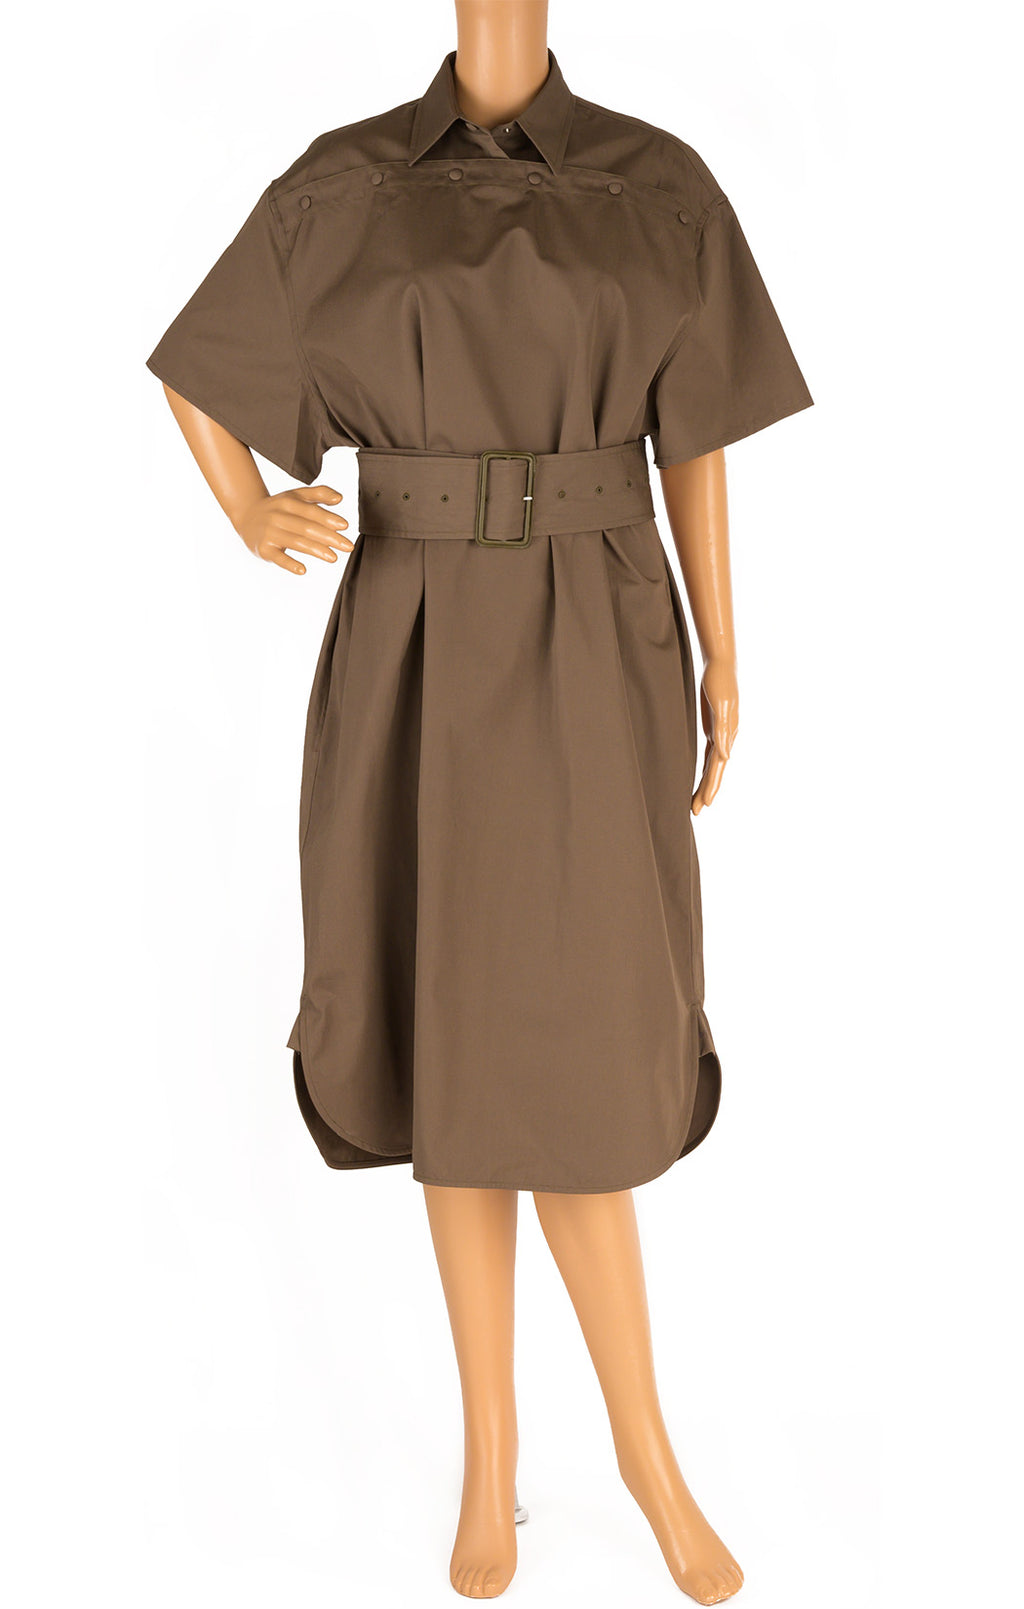 Front view of BOTTEGA VENETA  Dress Size: IT 40 (comparable to US 4-please note this is a full volume dress)